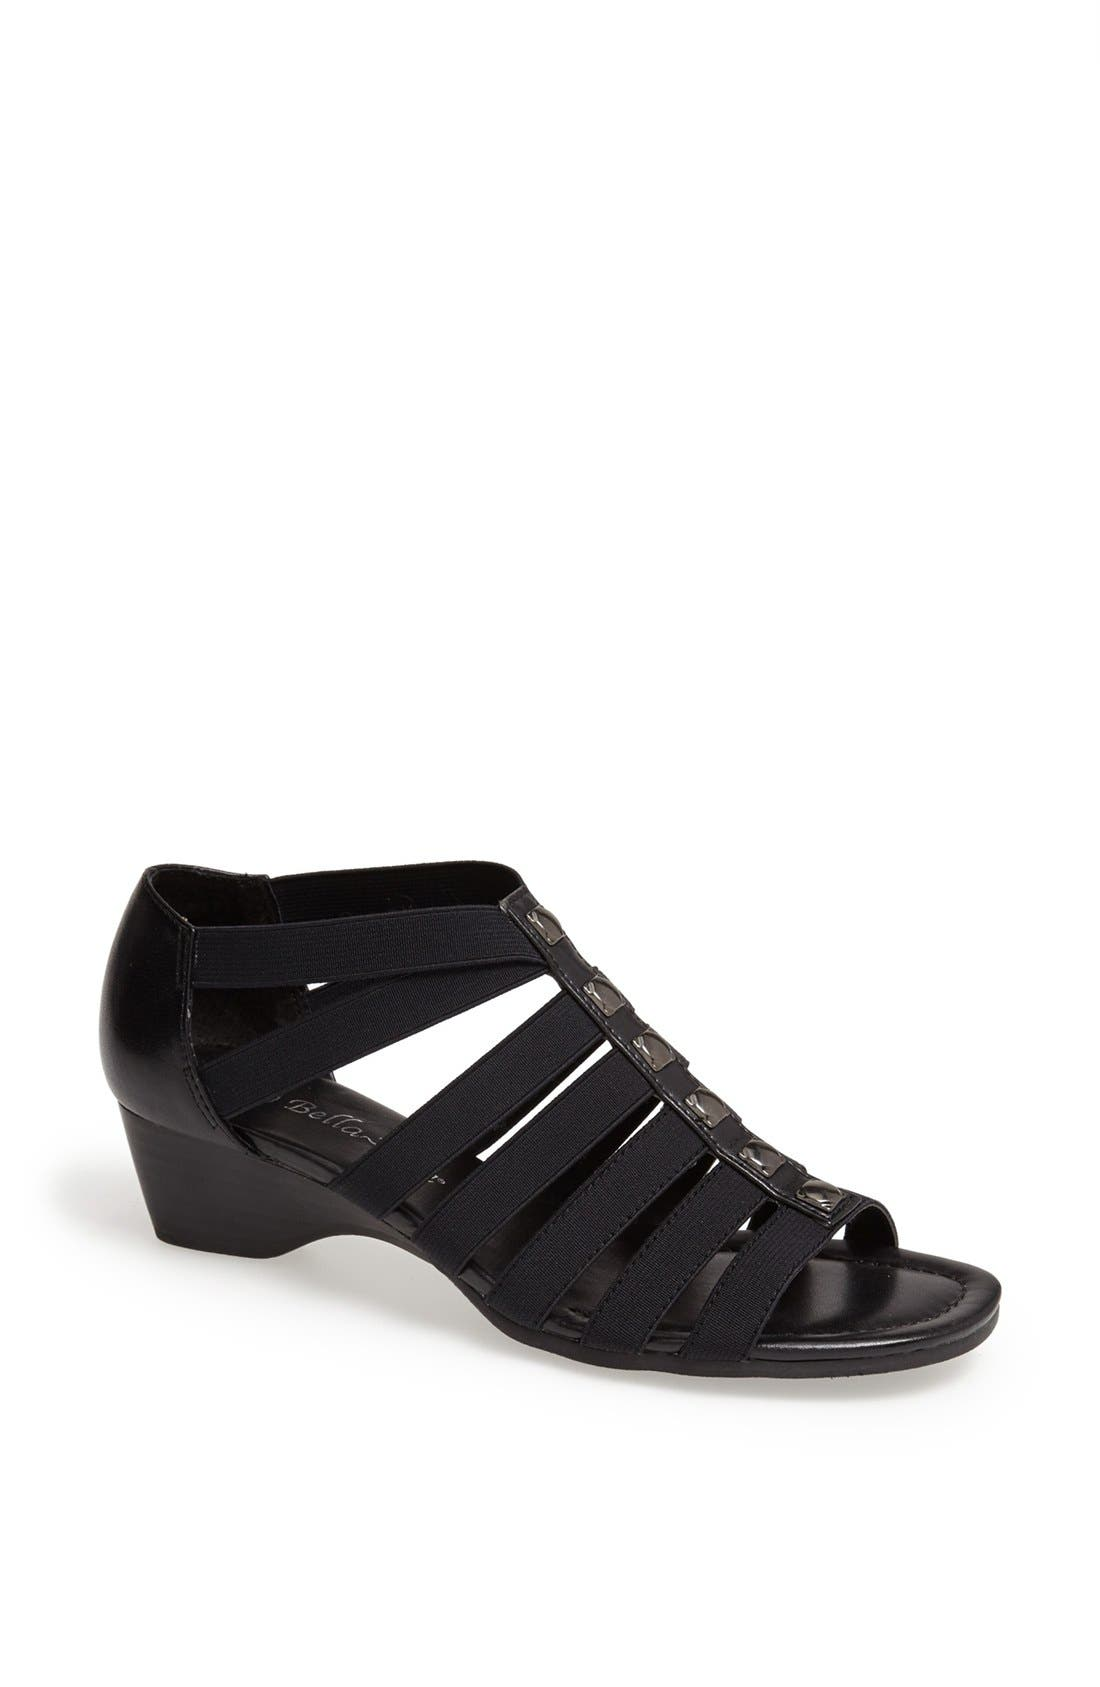 'Paula II' Sandal,                             Main thumbnail 1, color,                             Black